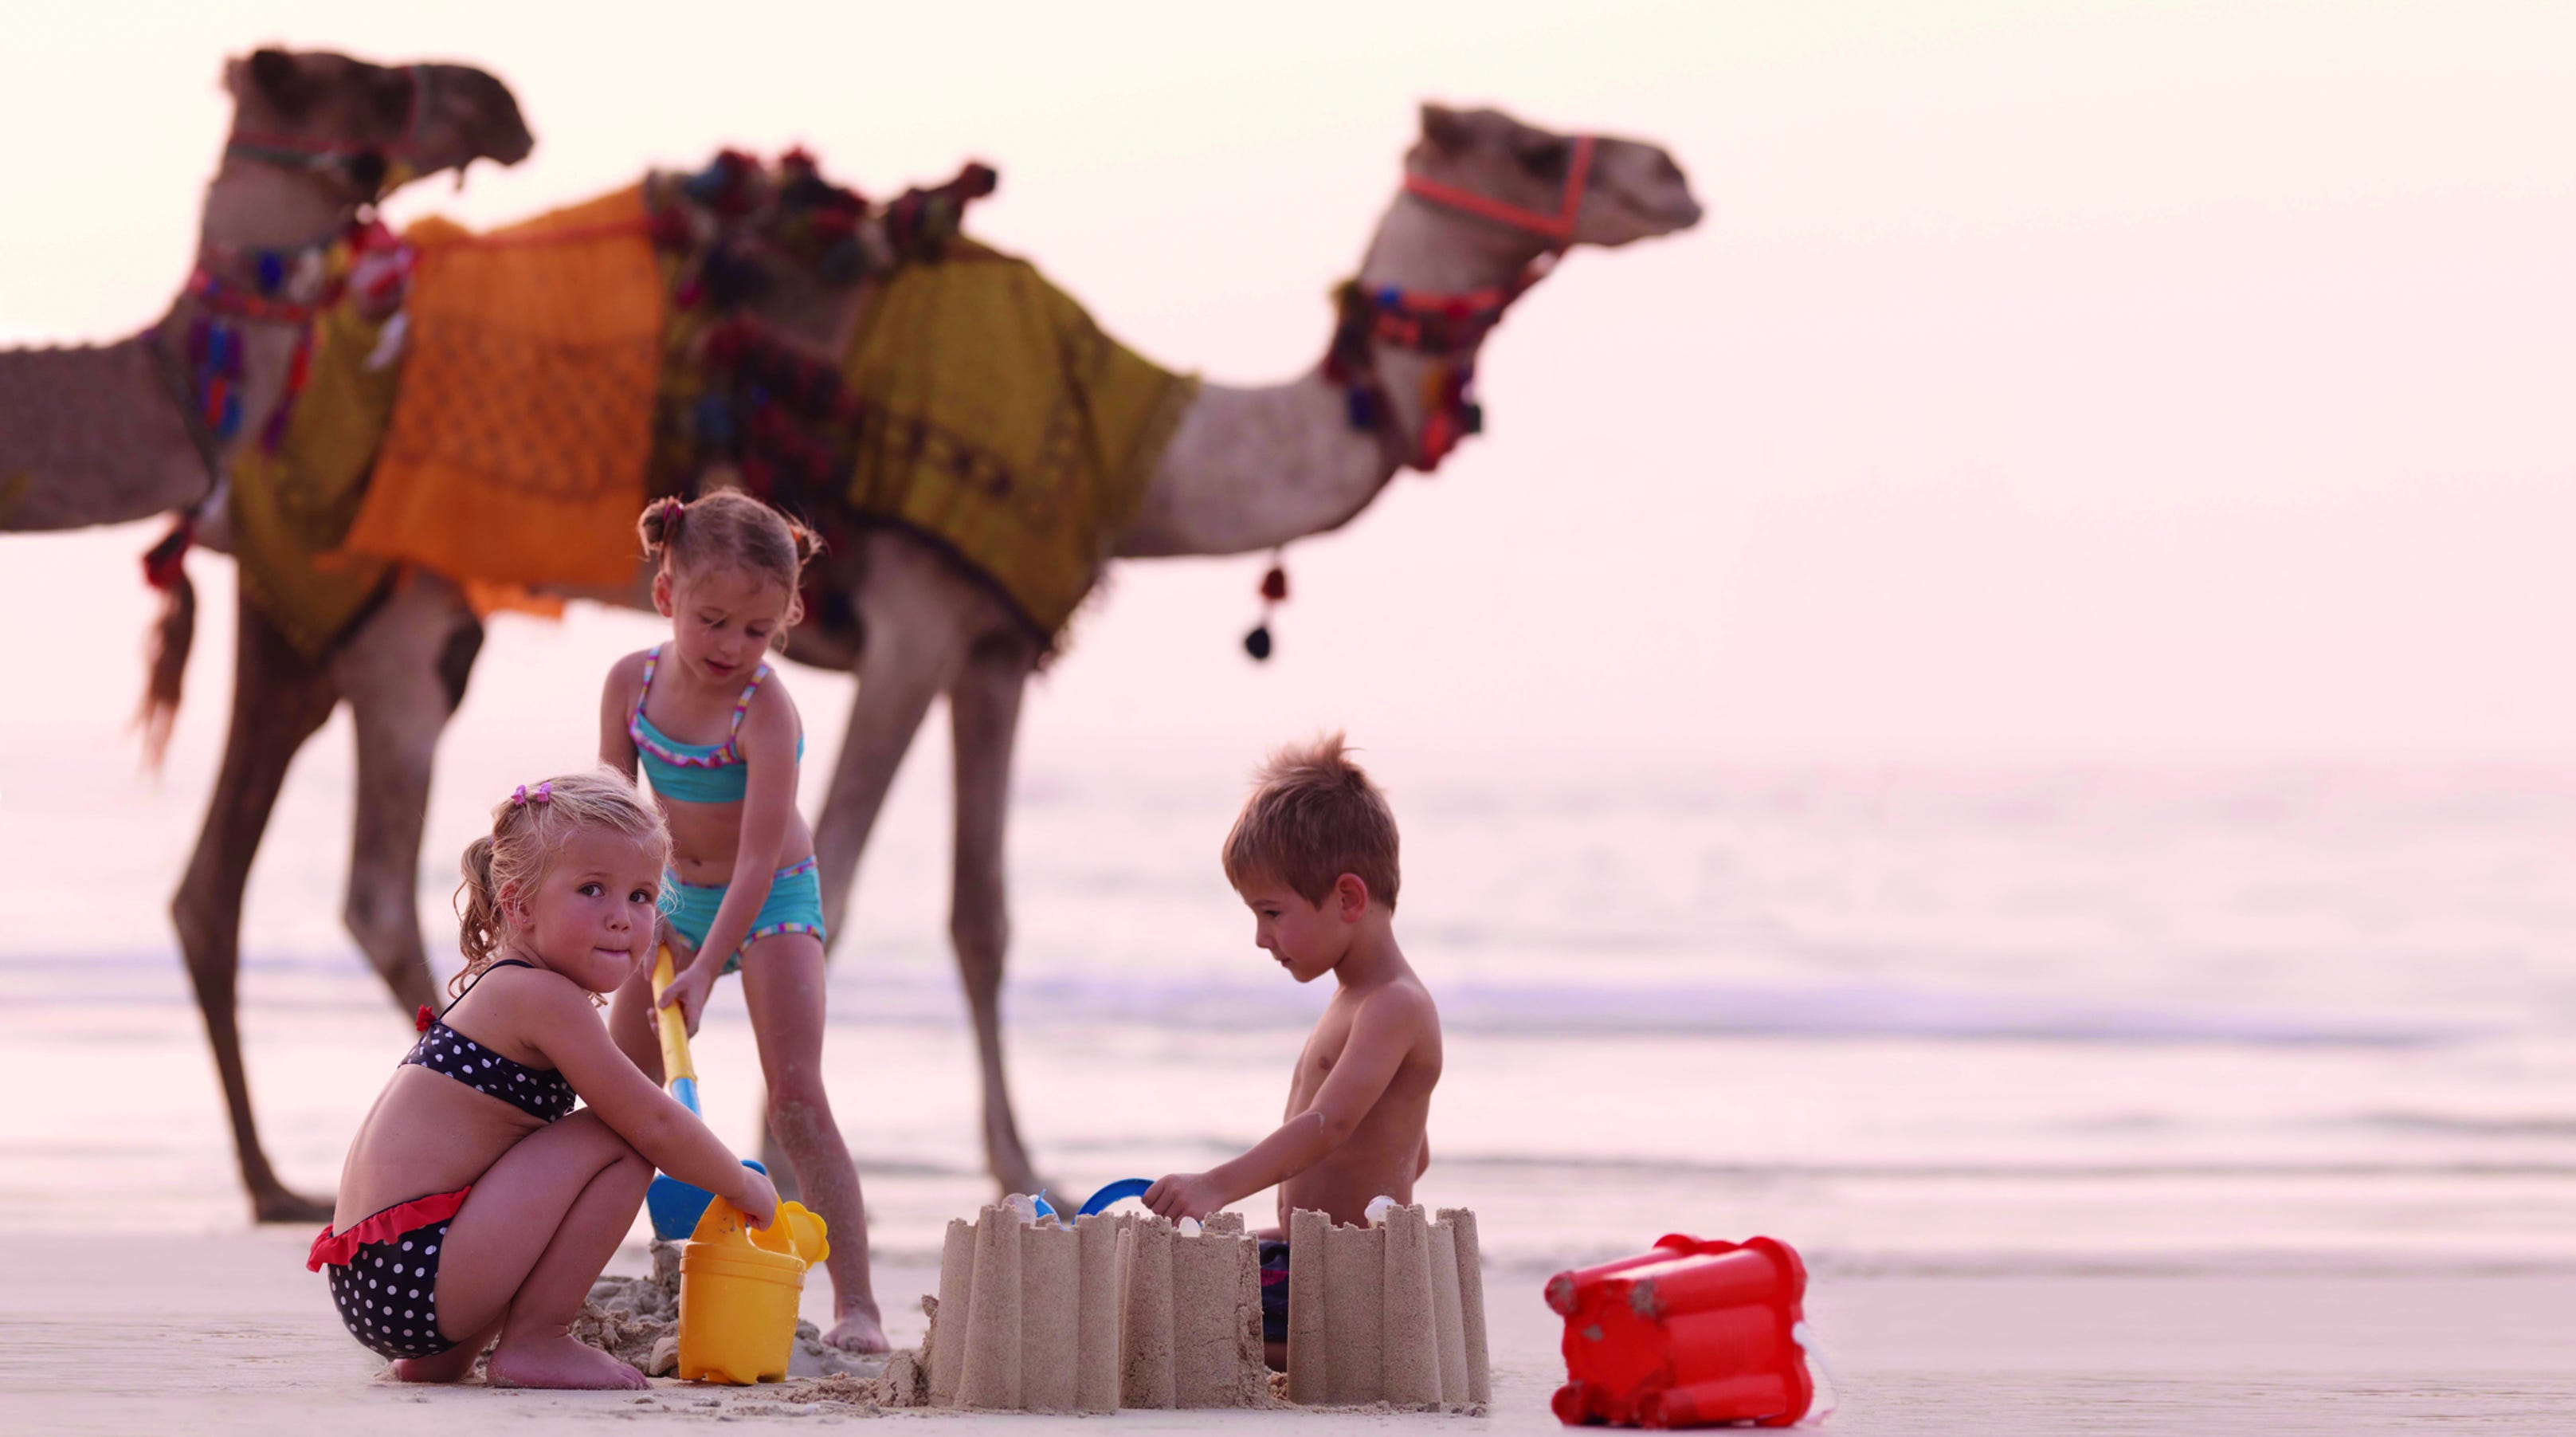 Hotels expand children 39 s programs with local adventures - Camel dive hotel ...